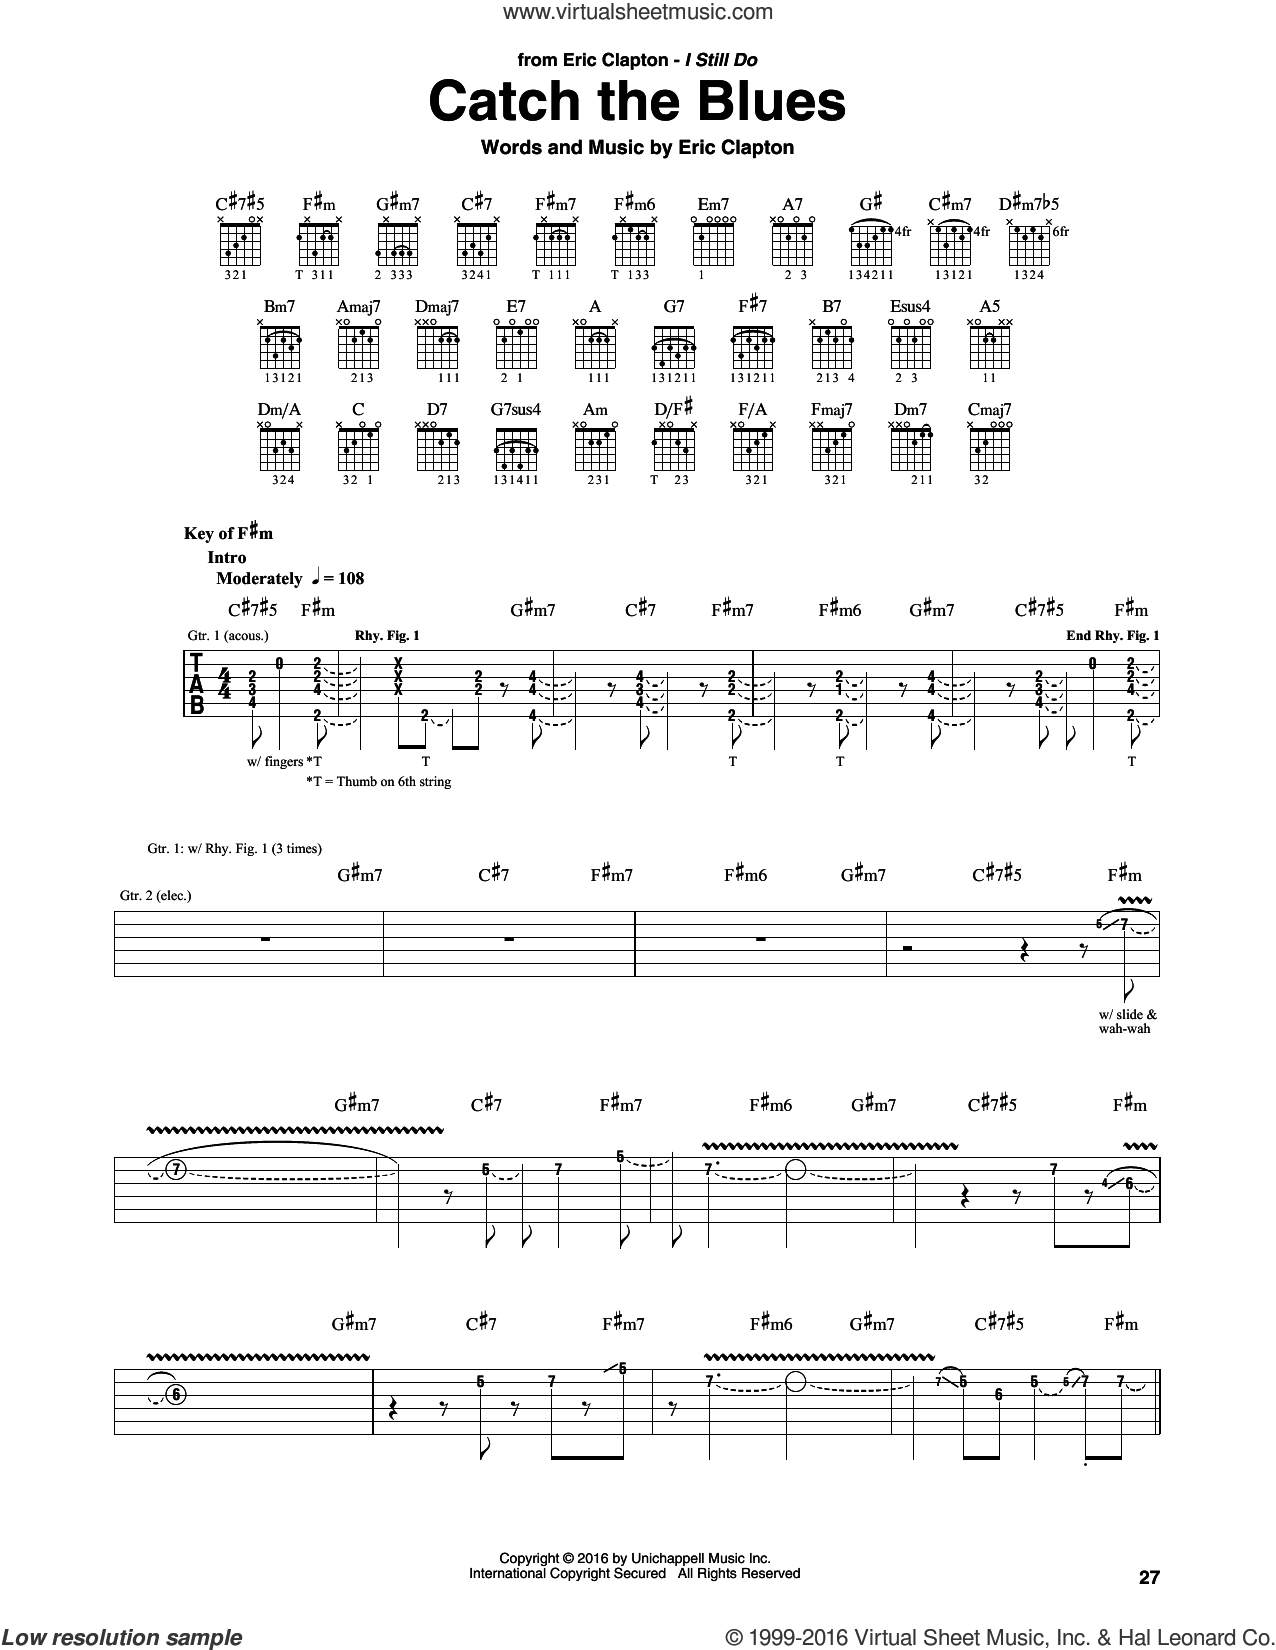 Catch The Blues sheet music for guitar (rhythm tablature) by Eric Clapton, intermediate skill level